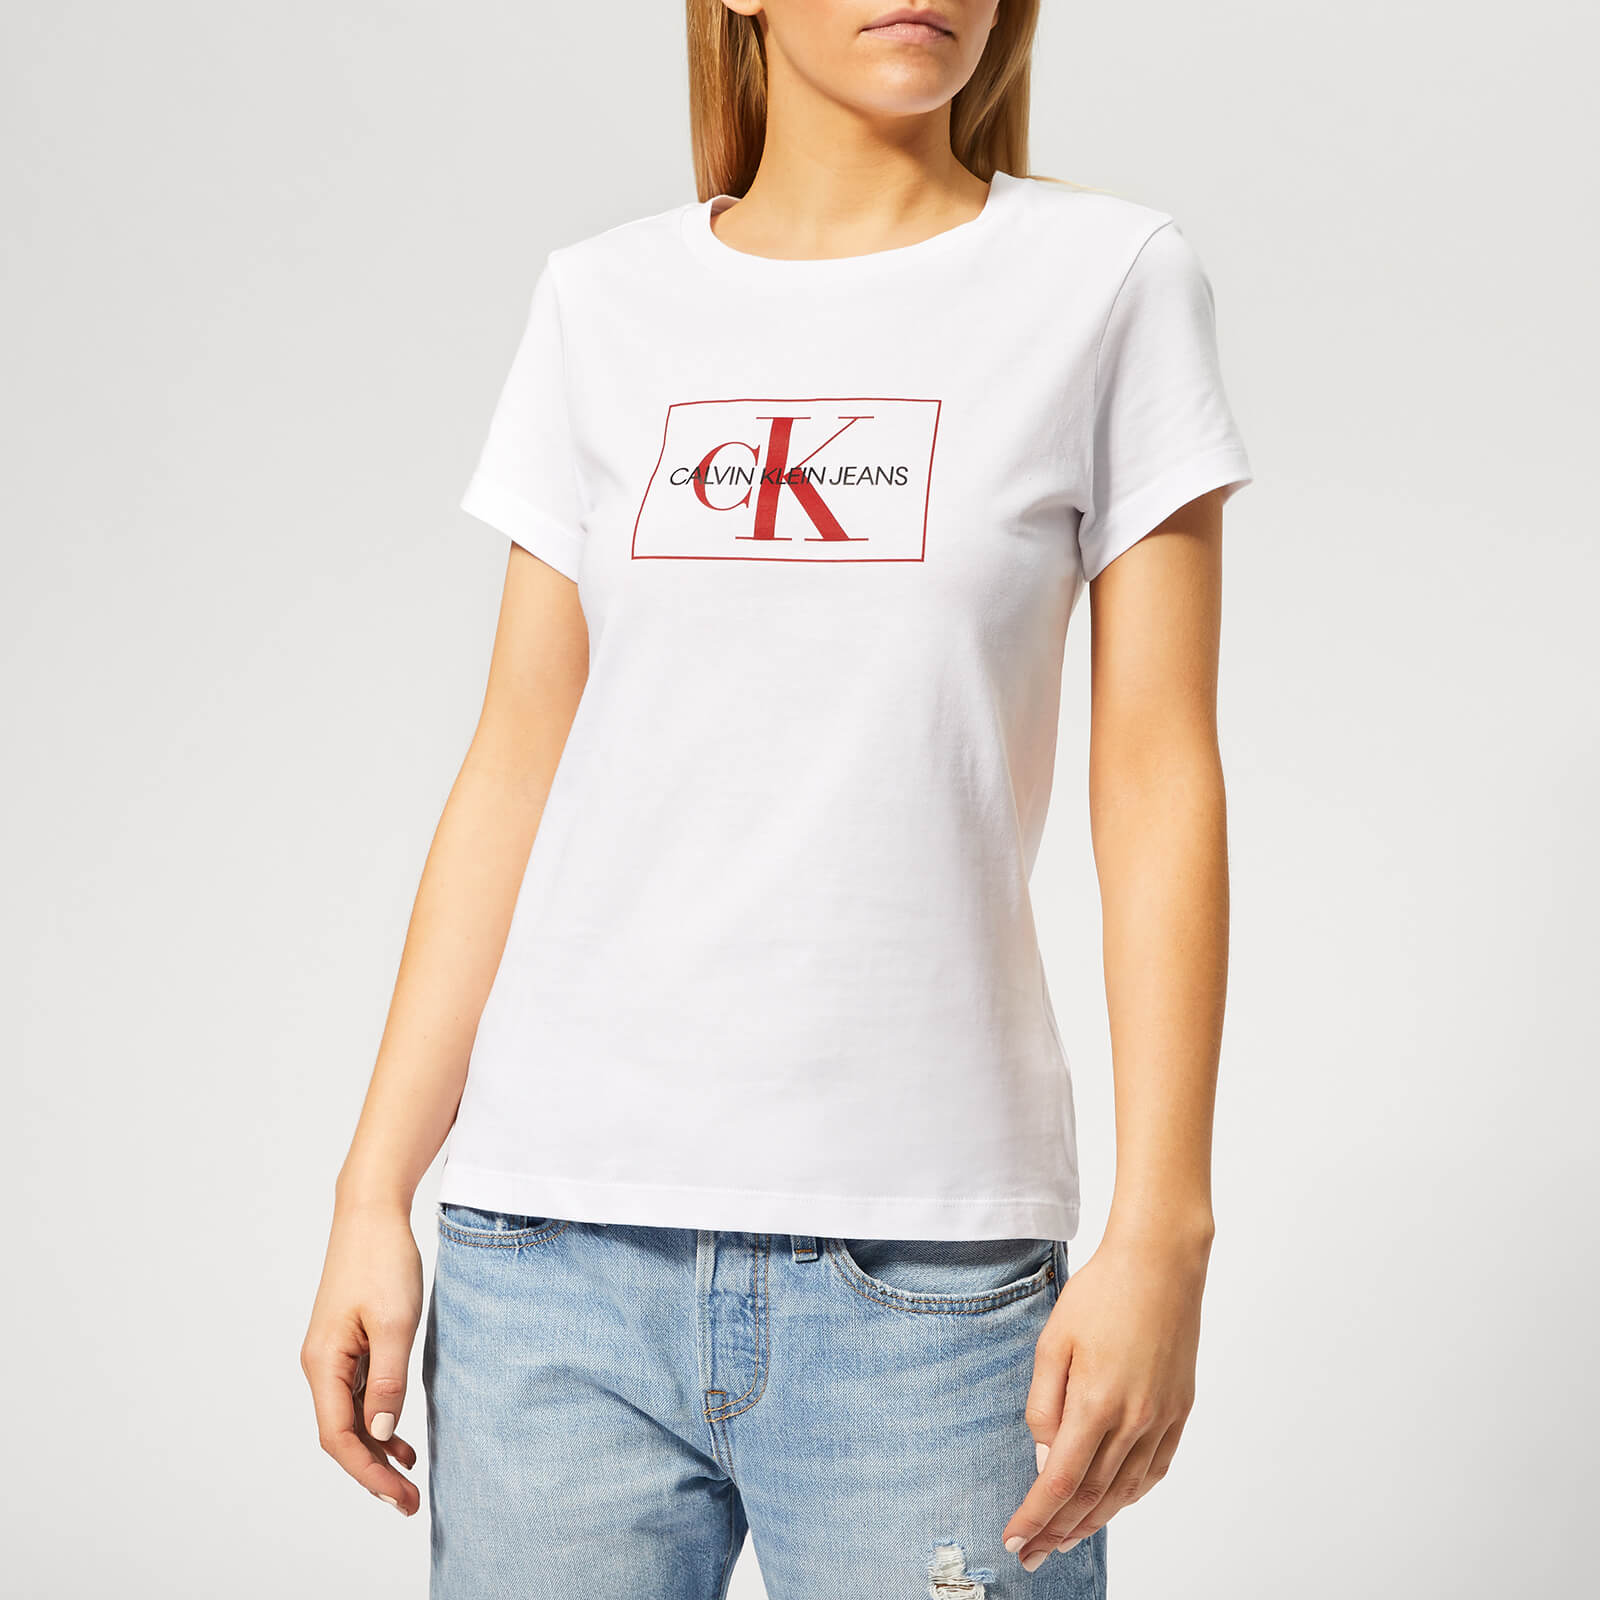 e815b016 Calvin Klein Jeans Women's Outline Monogram Slim Fit T-Shirt - Bright White/Racing  Red Womens Clothing | TheHut.com